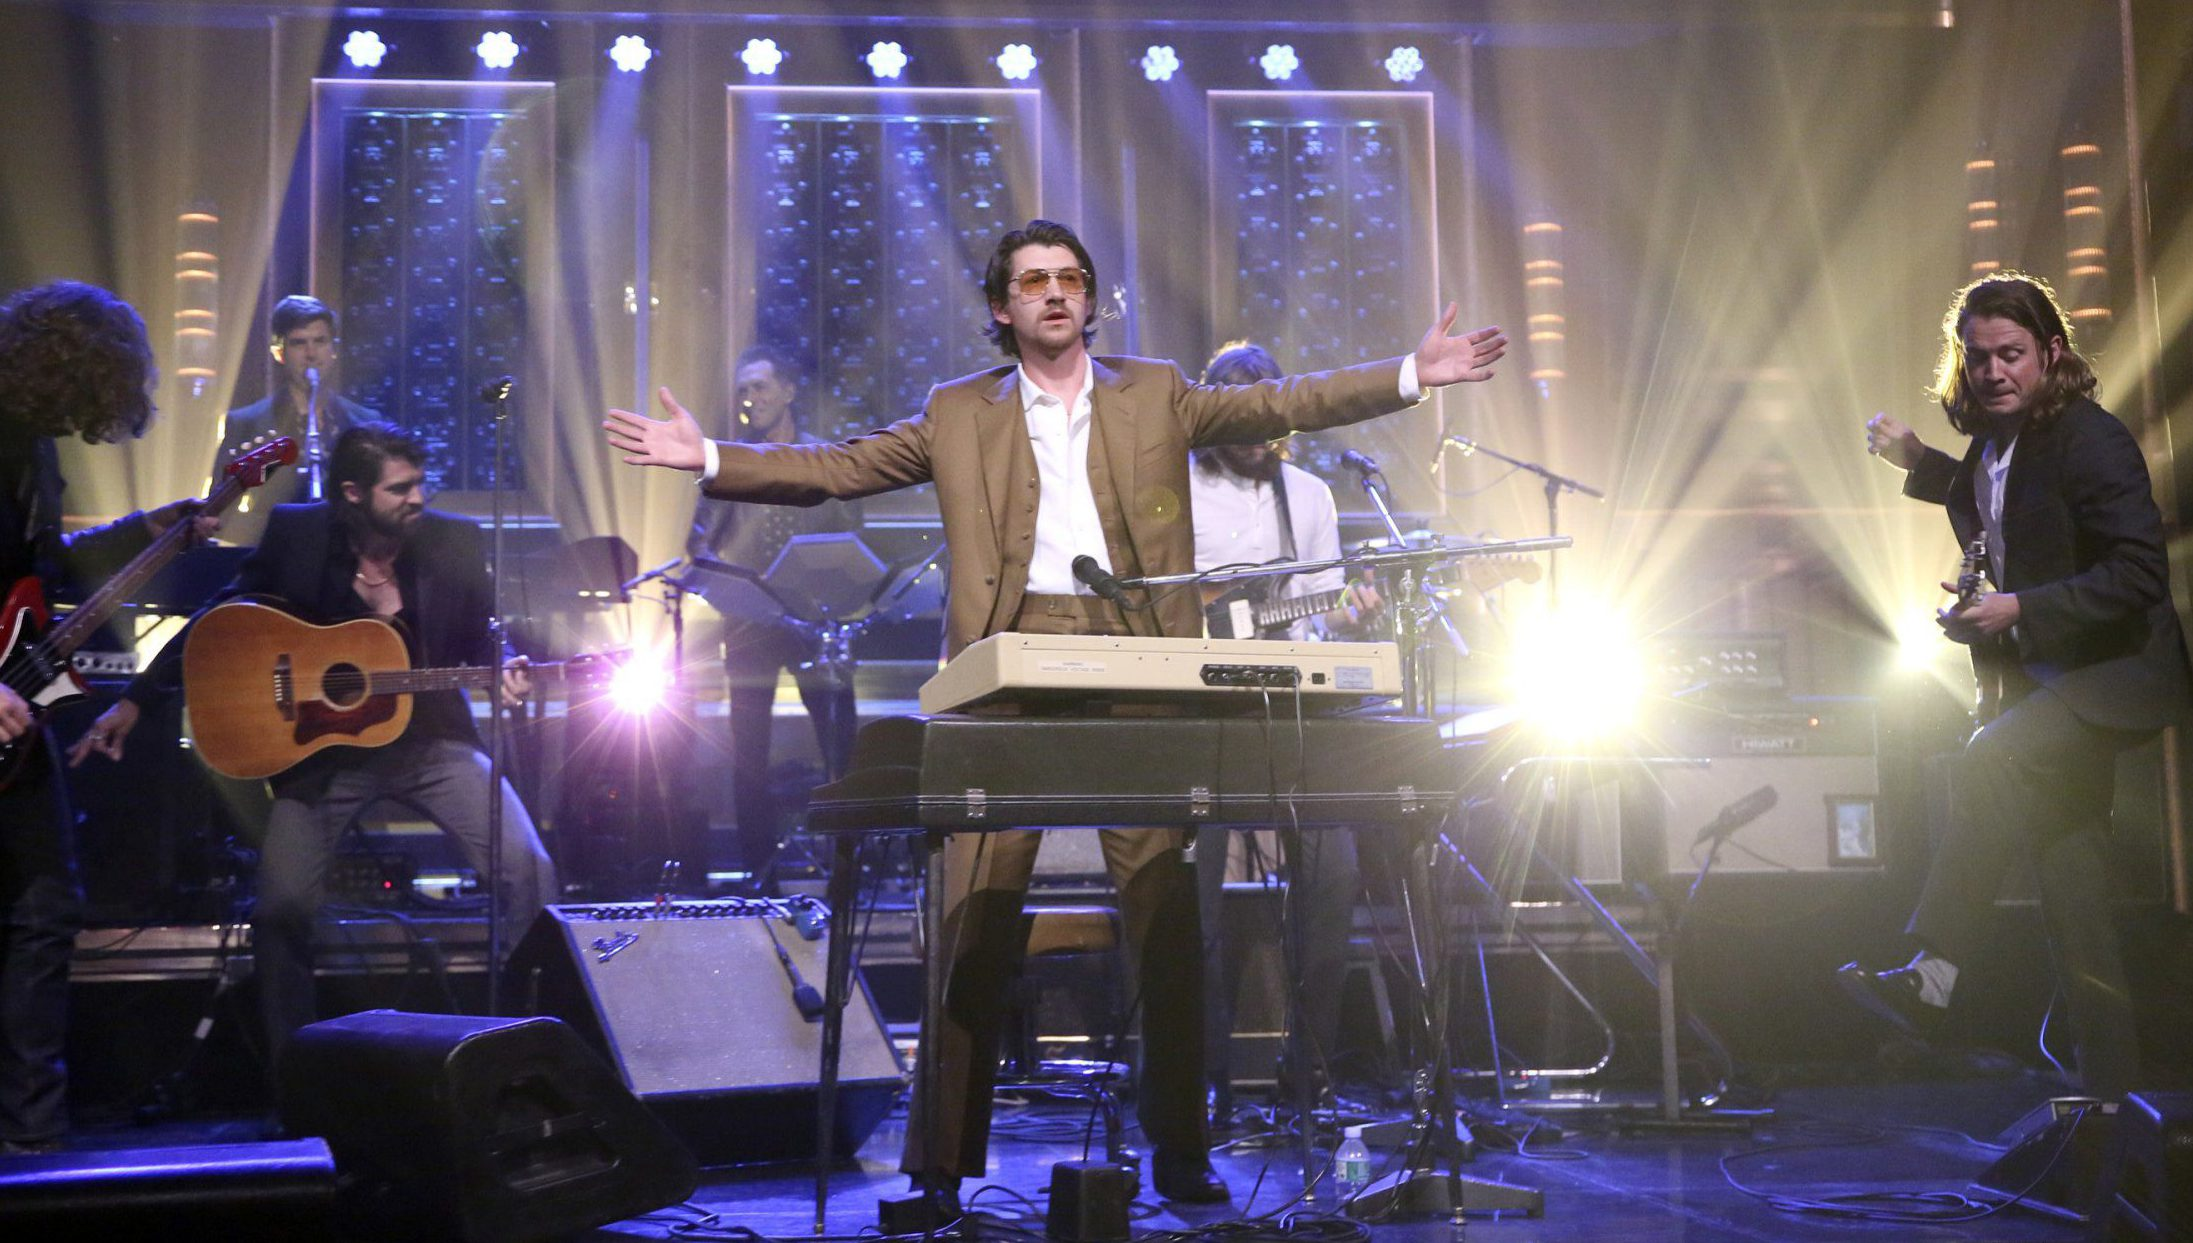 Arctic Monkeys perform Four Out of Five on Jimmy Fallon to celebrate album release